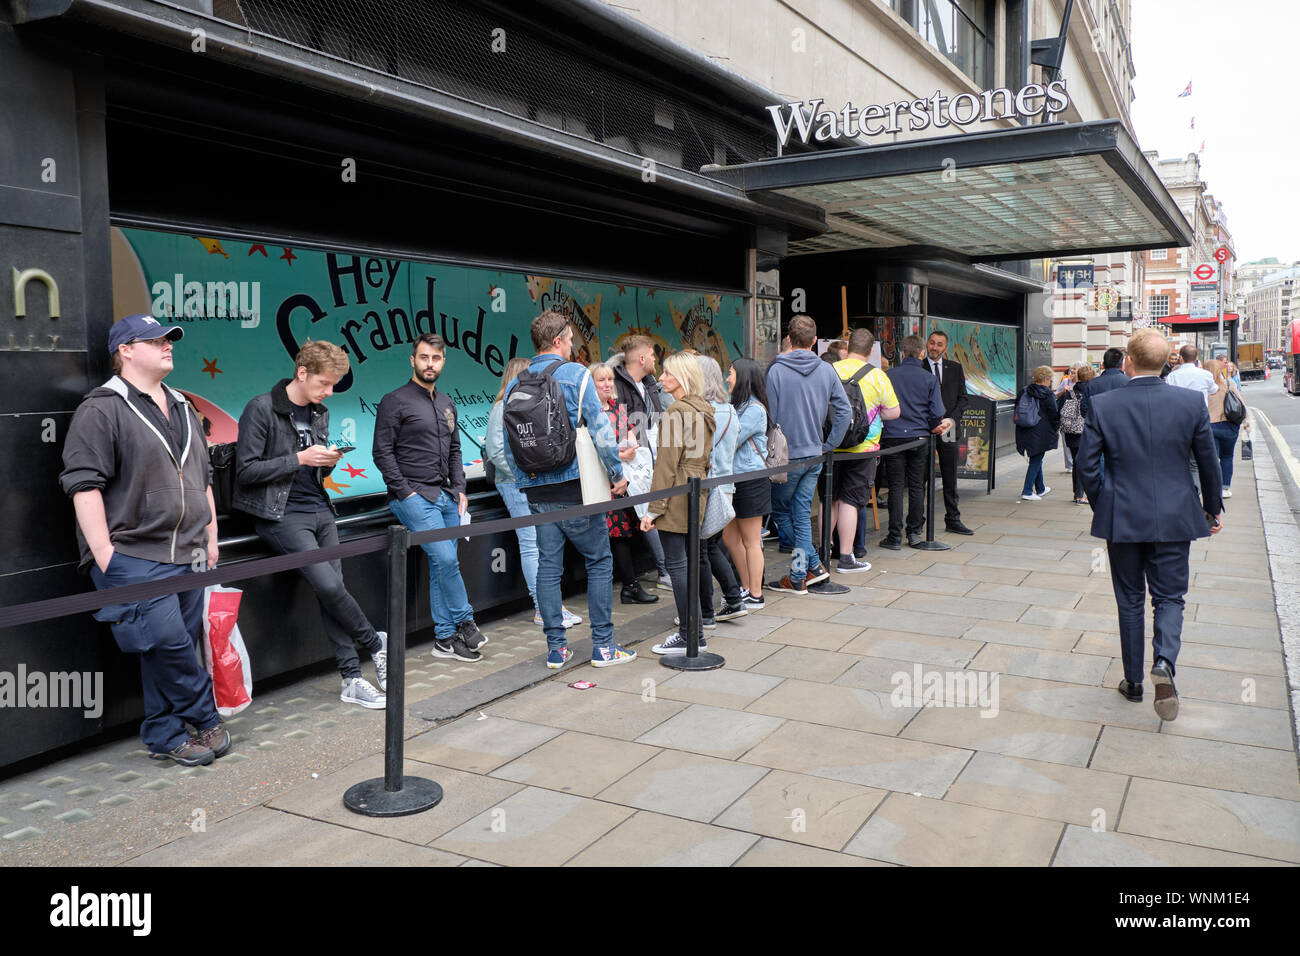 London, England, UK. September 6th, 2019. Signing event of Sir Paul McCartney's book Hey Grandude! at Waterstones in London. Fans waiting in line from 9am for the 4pm event . Credit: jf pelletier/Alamy Live News Stock Photo